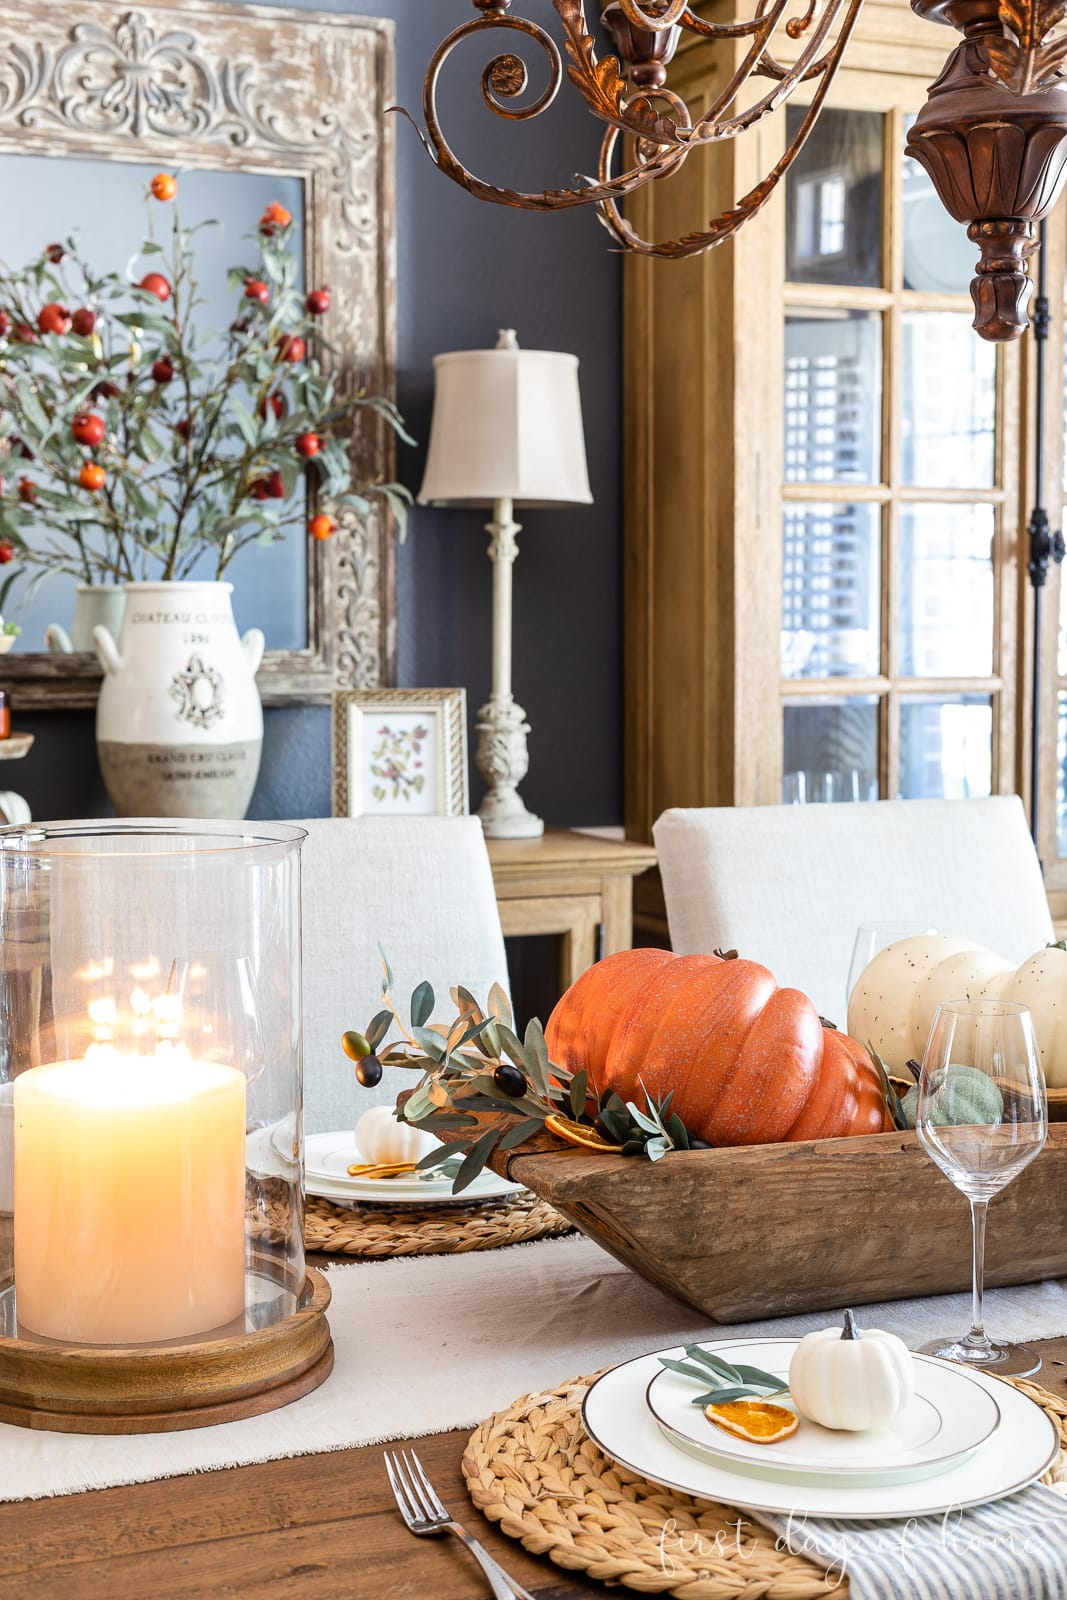 Dining table decorated for fall with dough bowl filled with pumpkins, acorns, and fall foliage